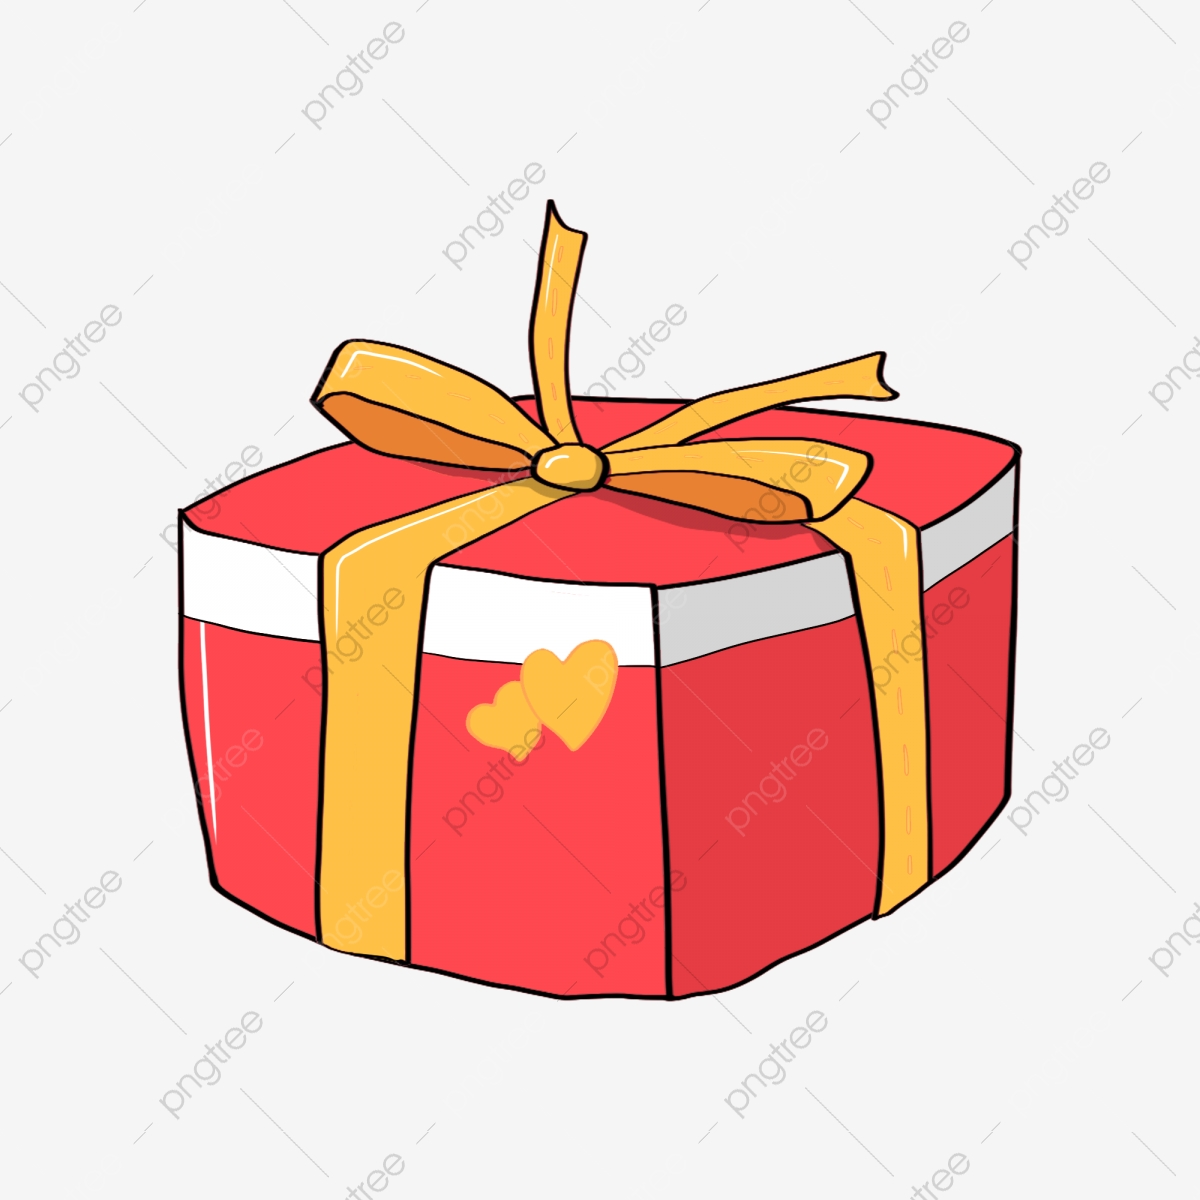 Cartoon Gift Box Red Gift Box Yellow Ribbon Wrap Yellow Heart Shape